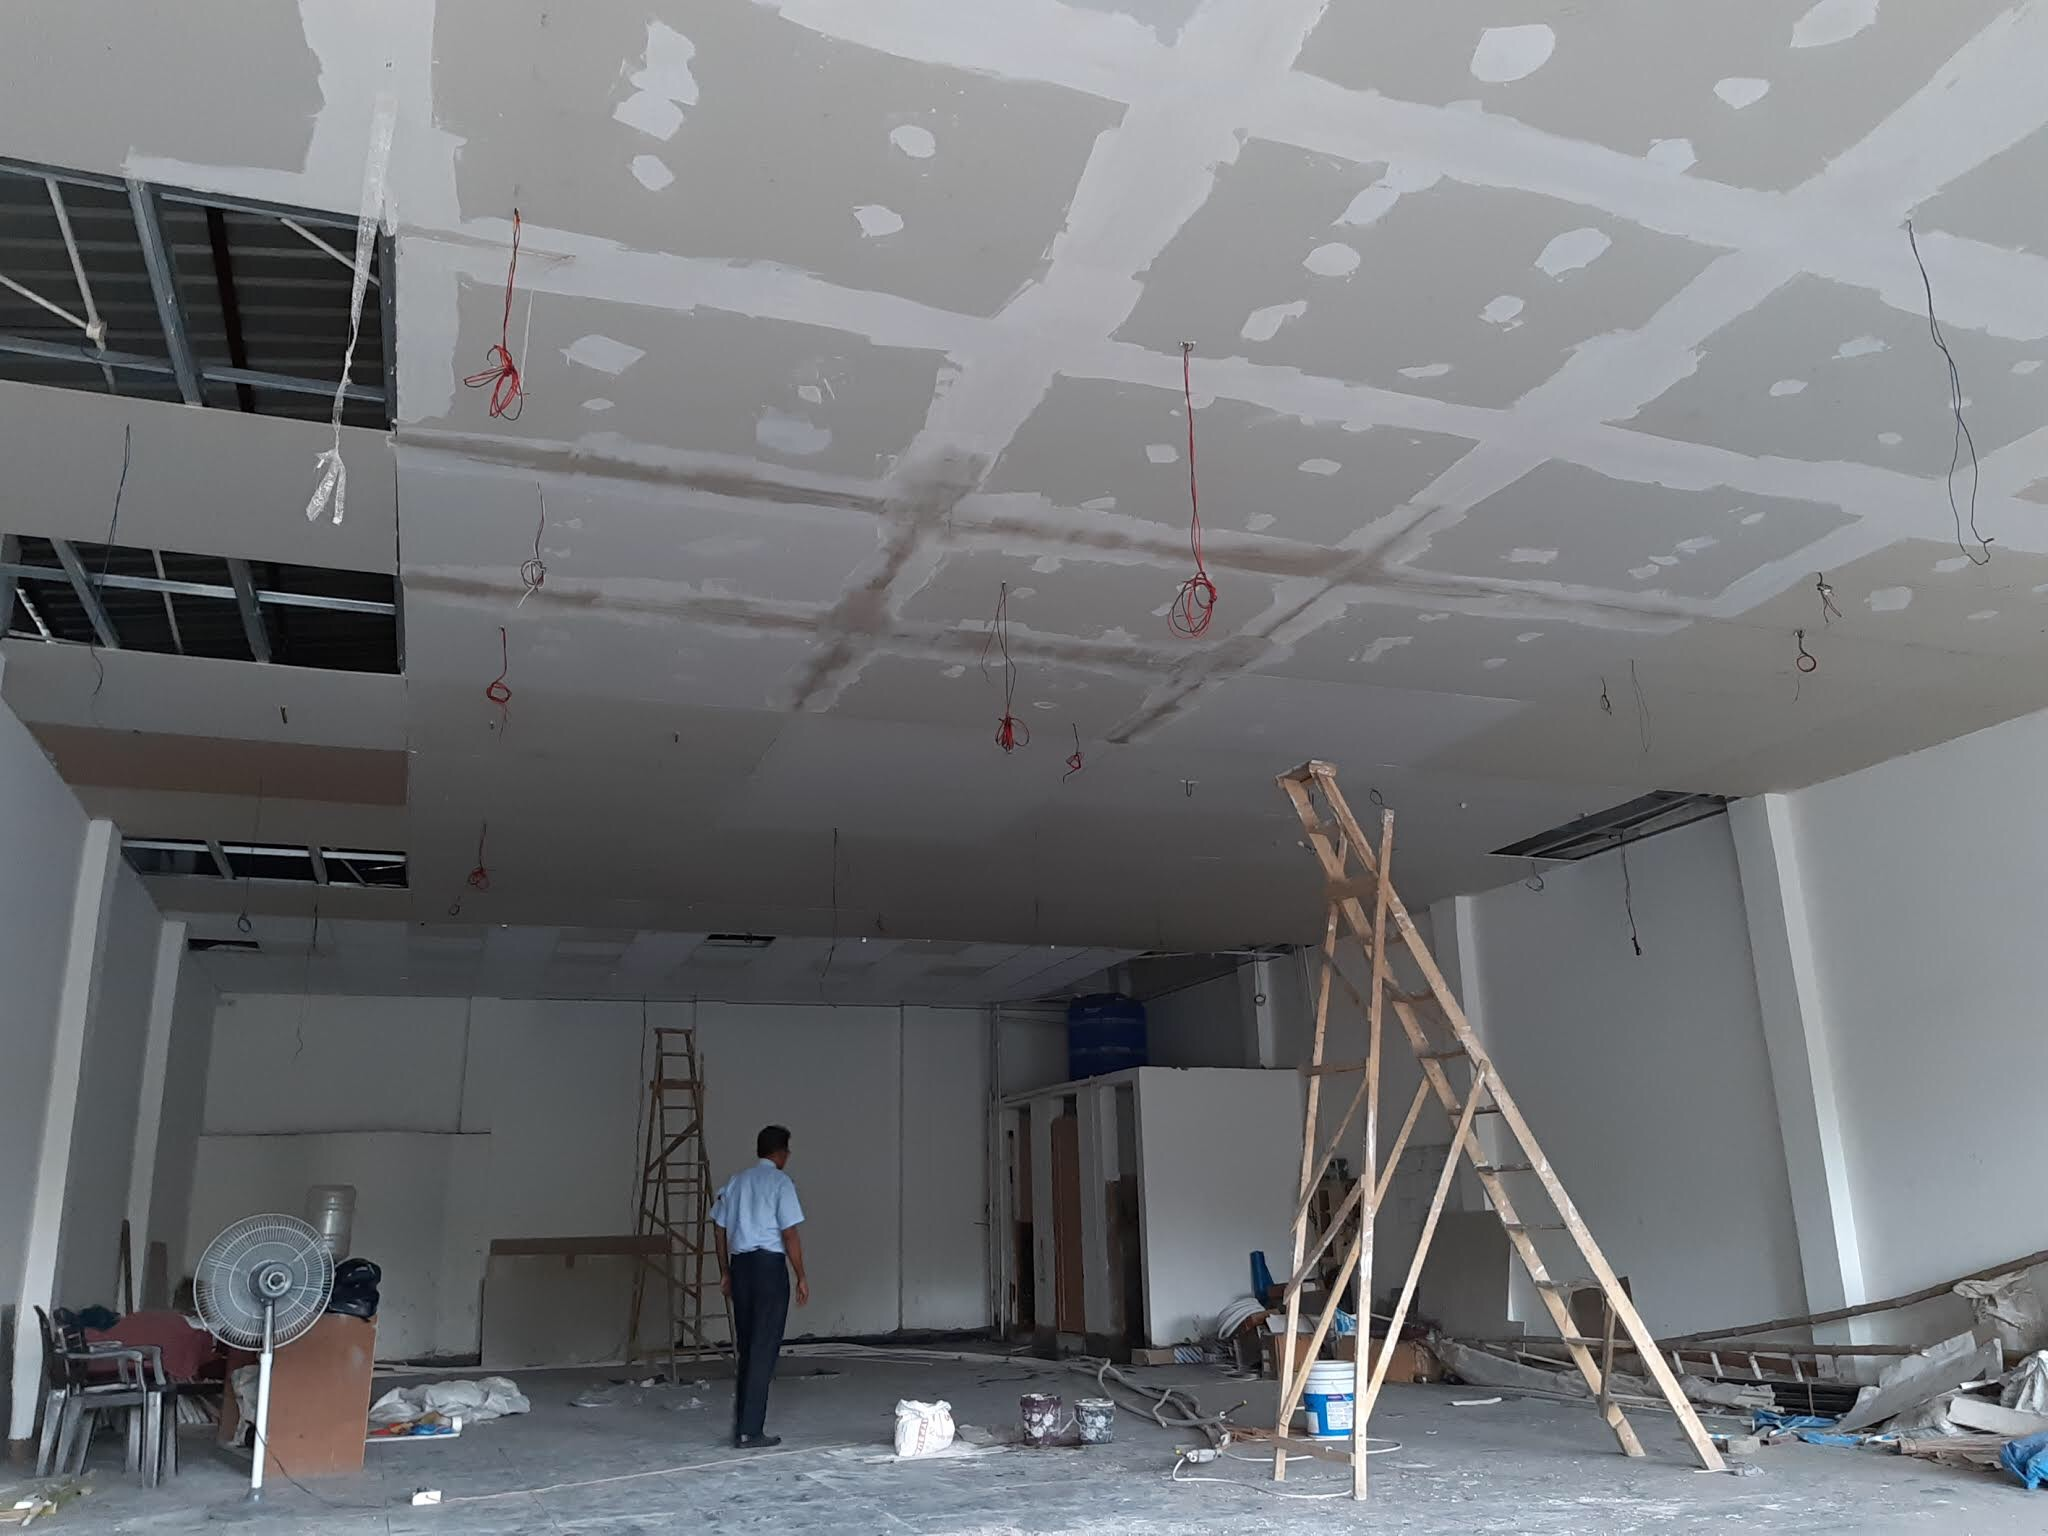 drywall Gypsum Bord Ceiling , Heat prove Falsceiling,Soroom Falsceiling,  Industry Falsceiling , where house  Falsceiling,